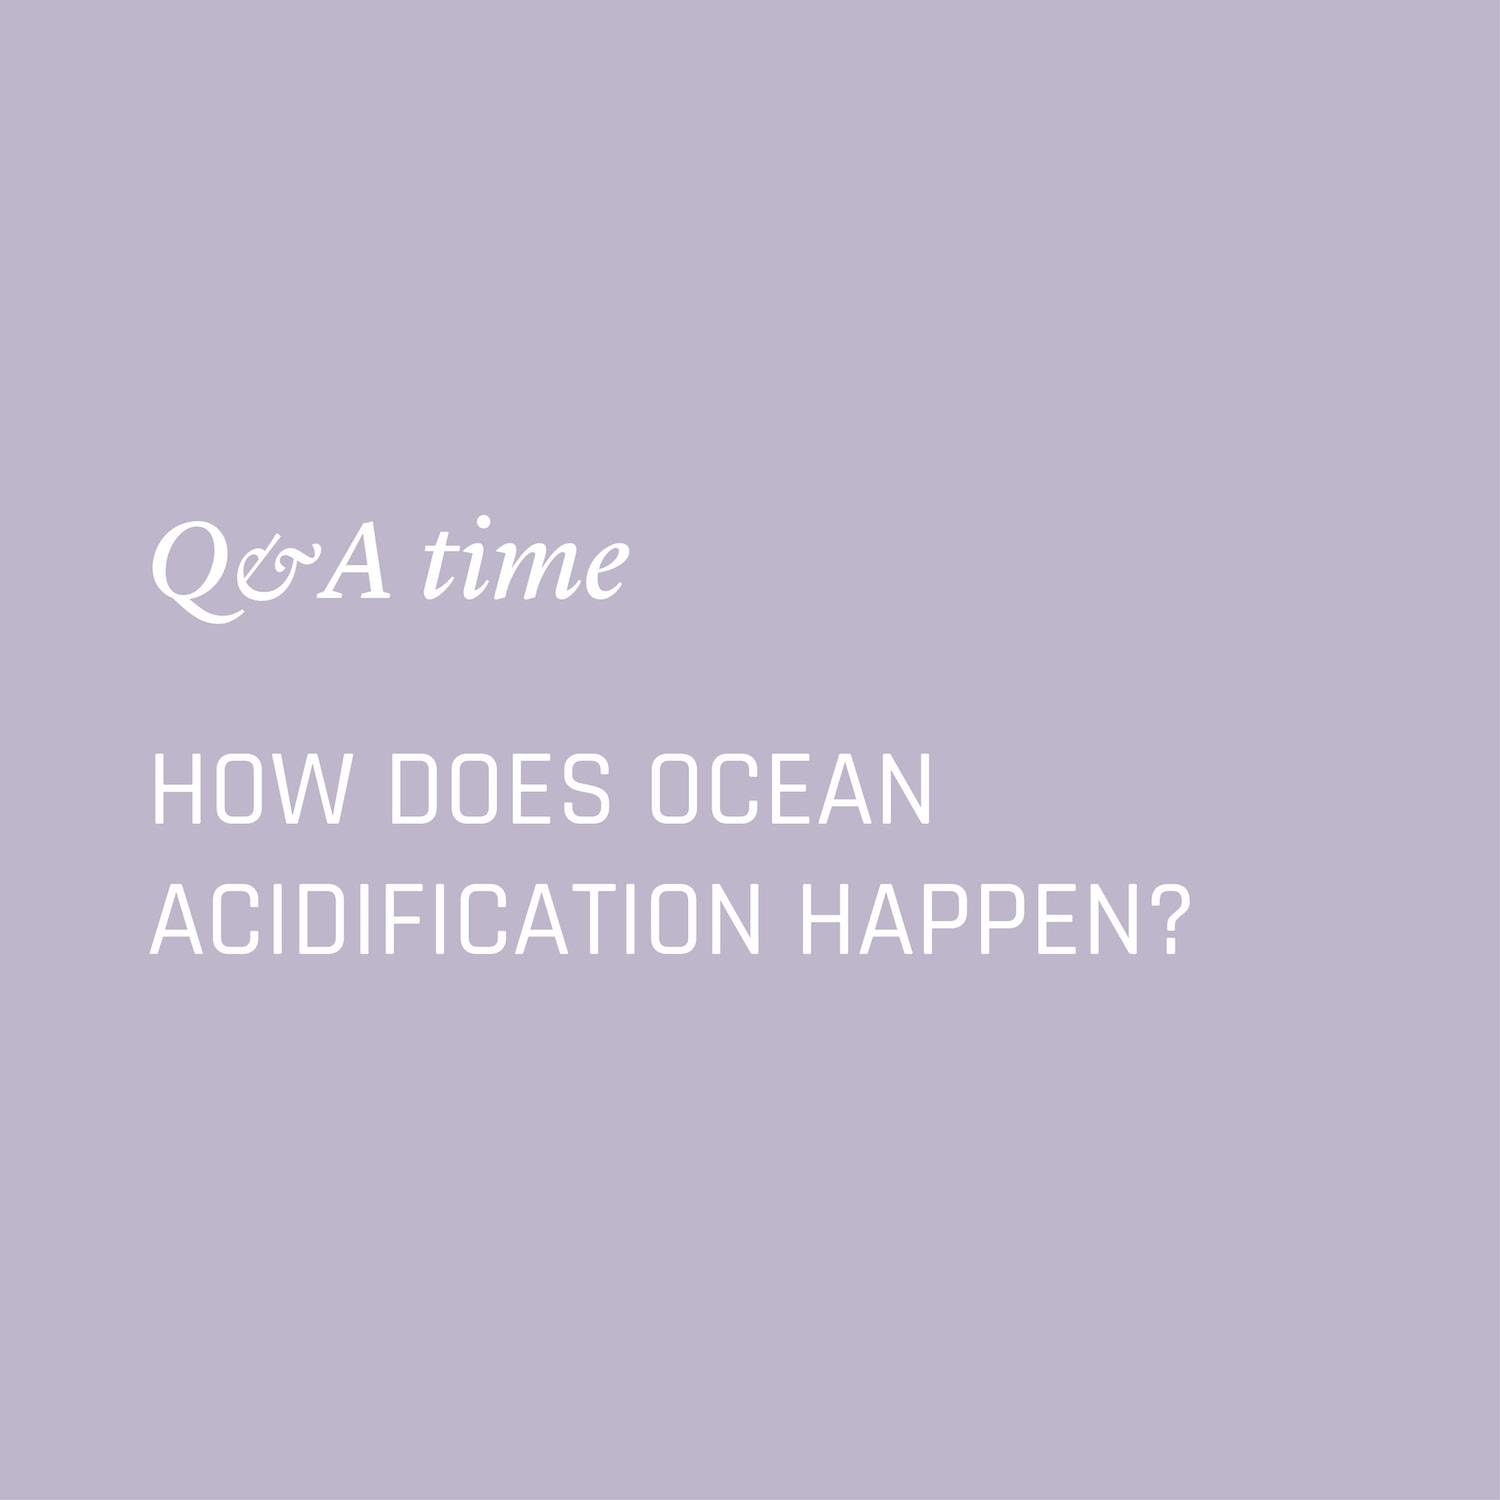 How does ocean acidification happen? Environment Environmental Questions FAQs Frequently Asked Questions Climate Change Plastics Oceans Animals Nowhere & Everywhere